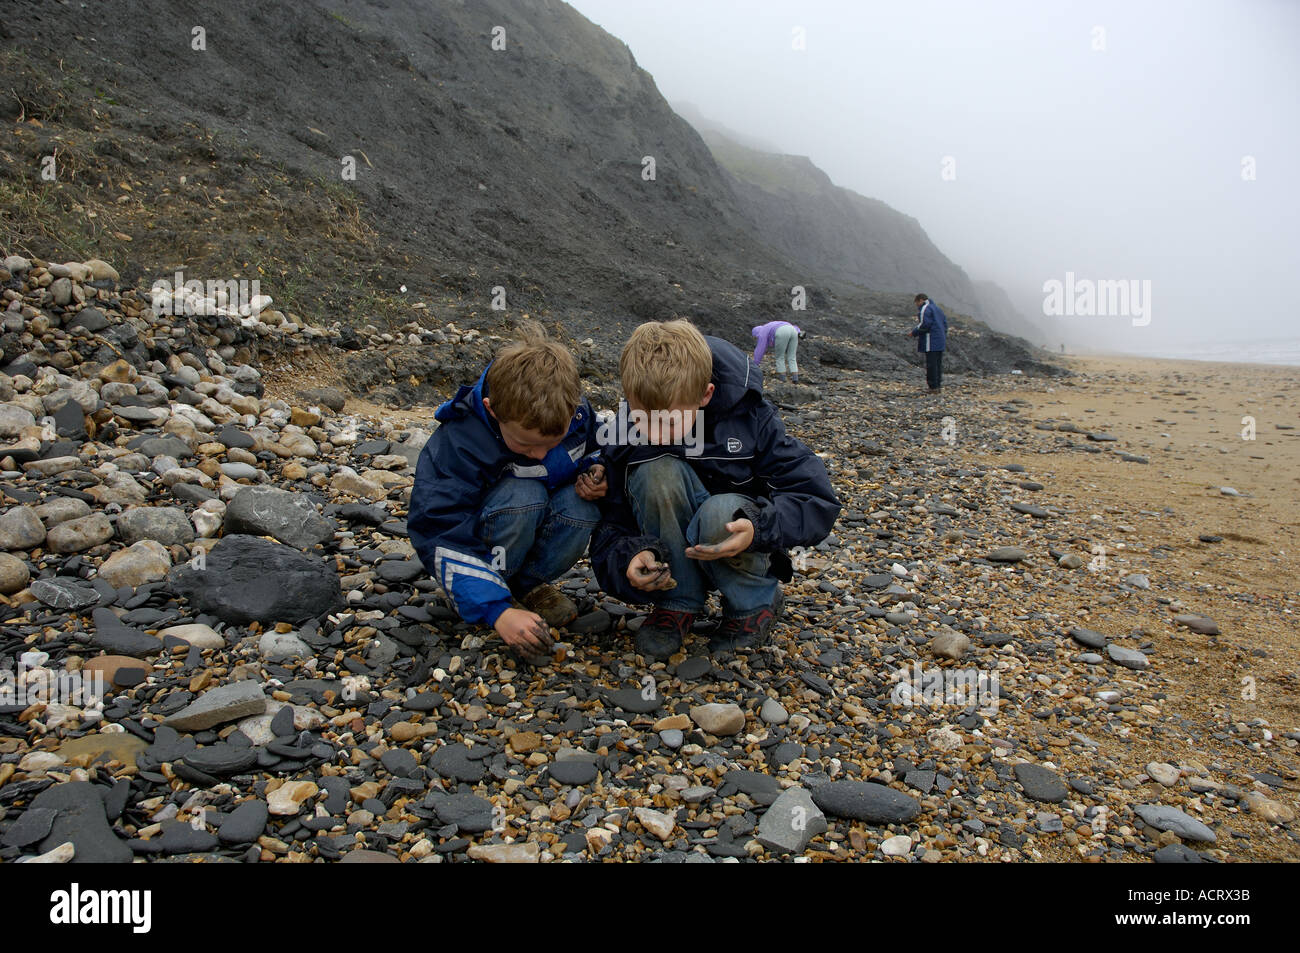 Children collecting fossiles Jurassic Coast Charmouth near Lyme Regis Dorset East Devon Coast England Stock Photo